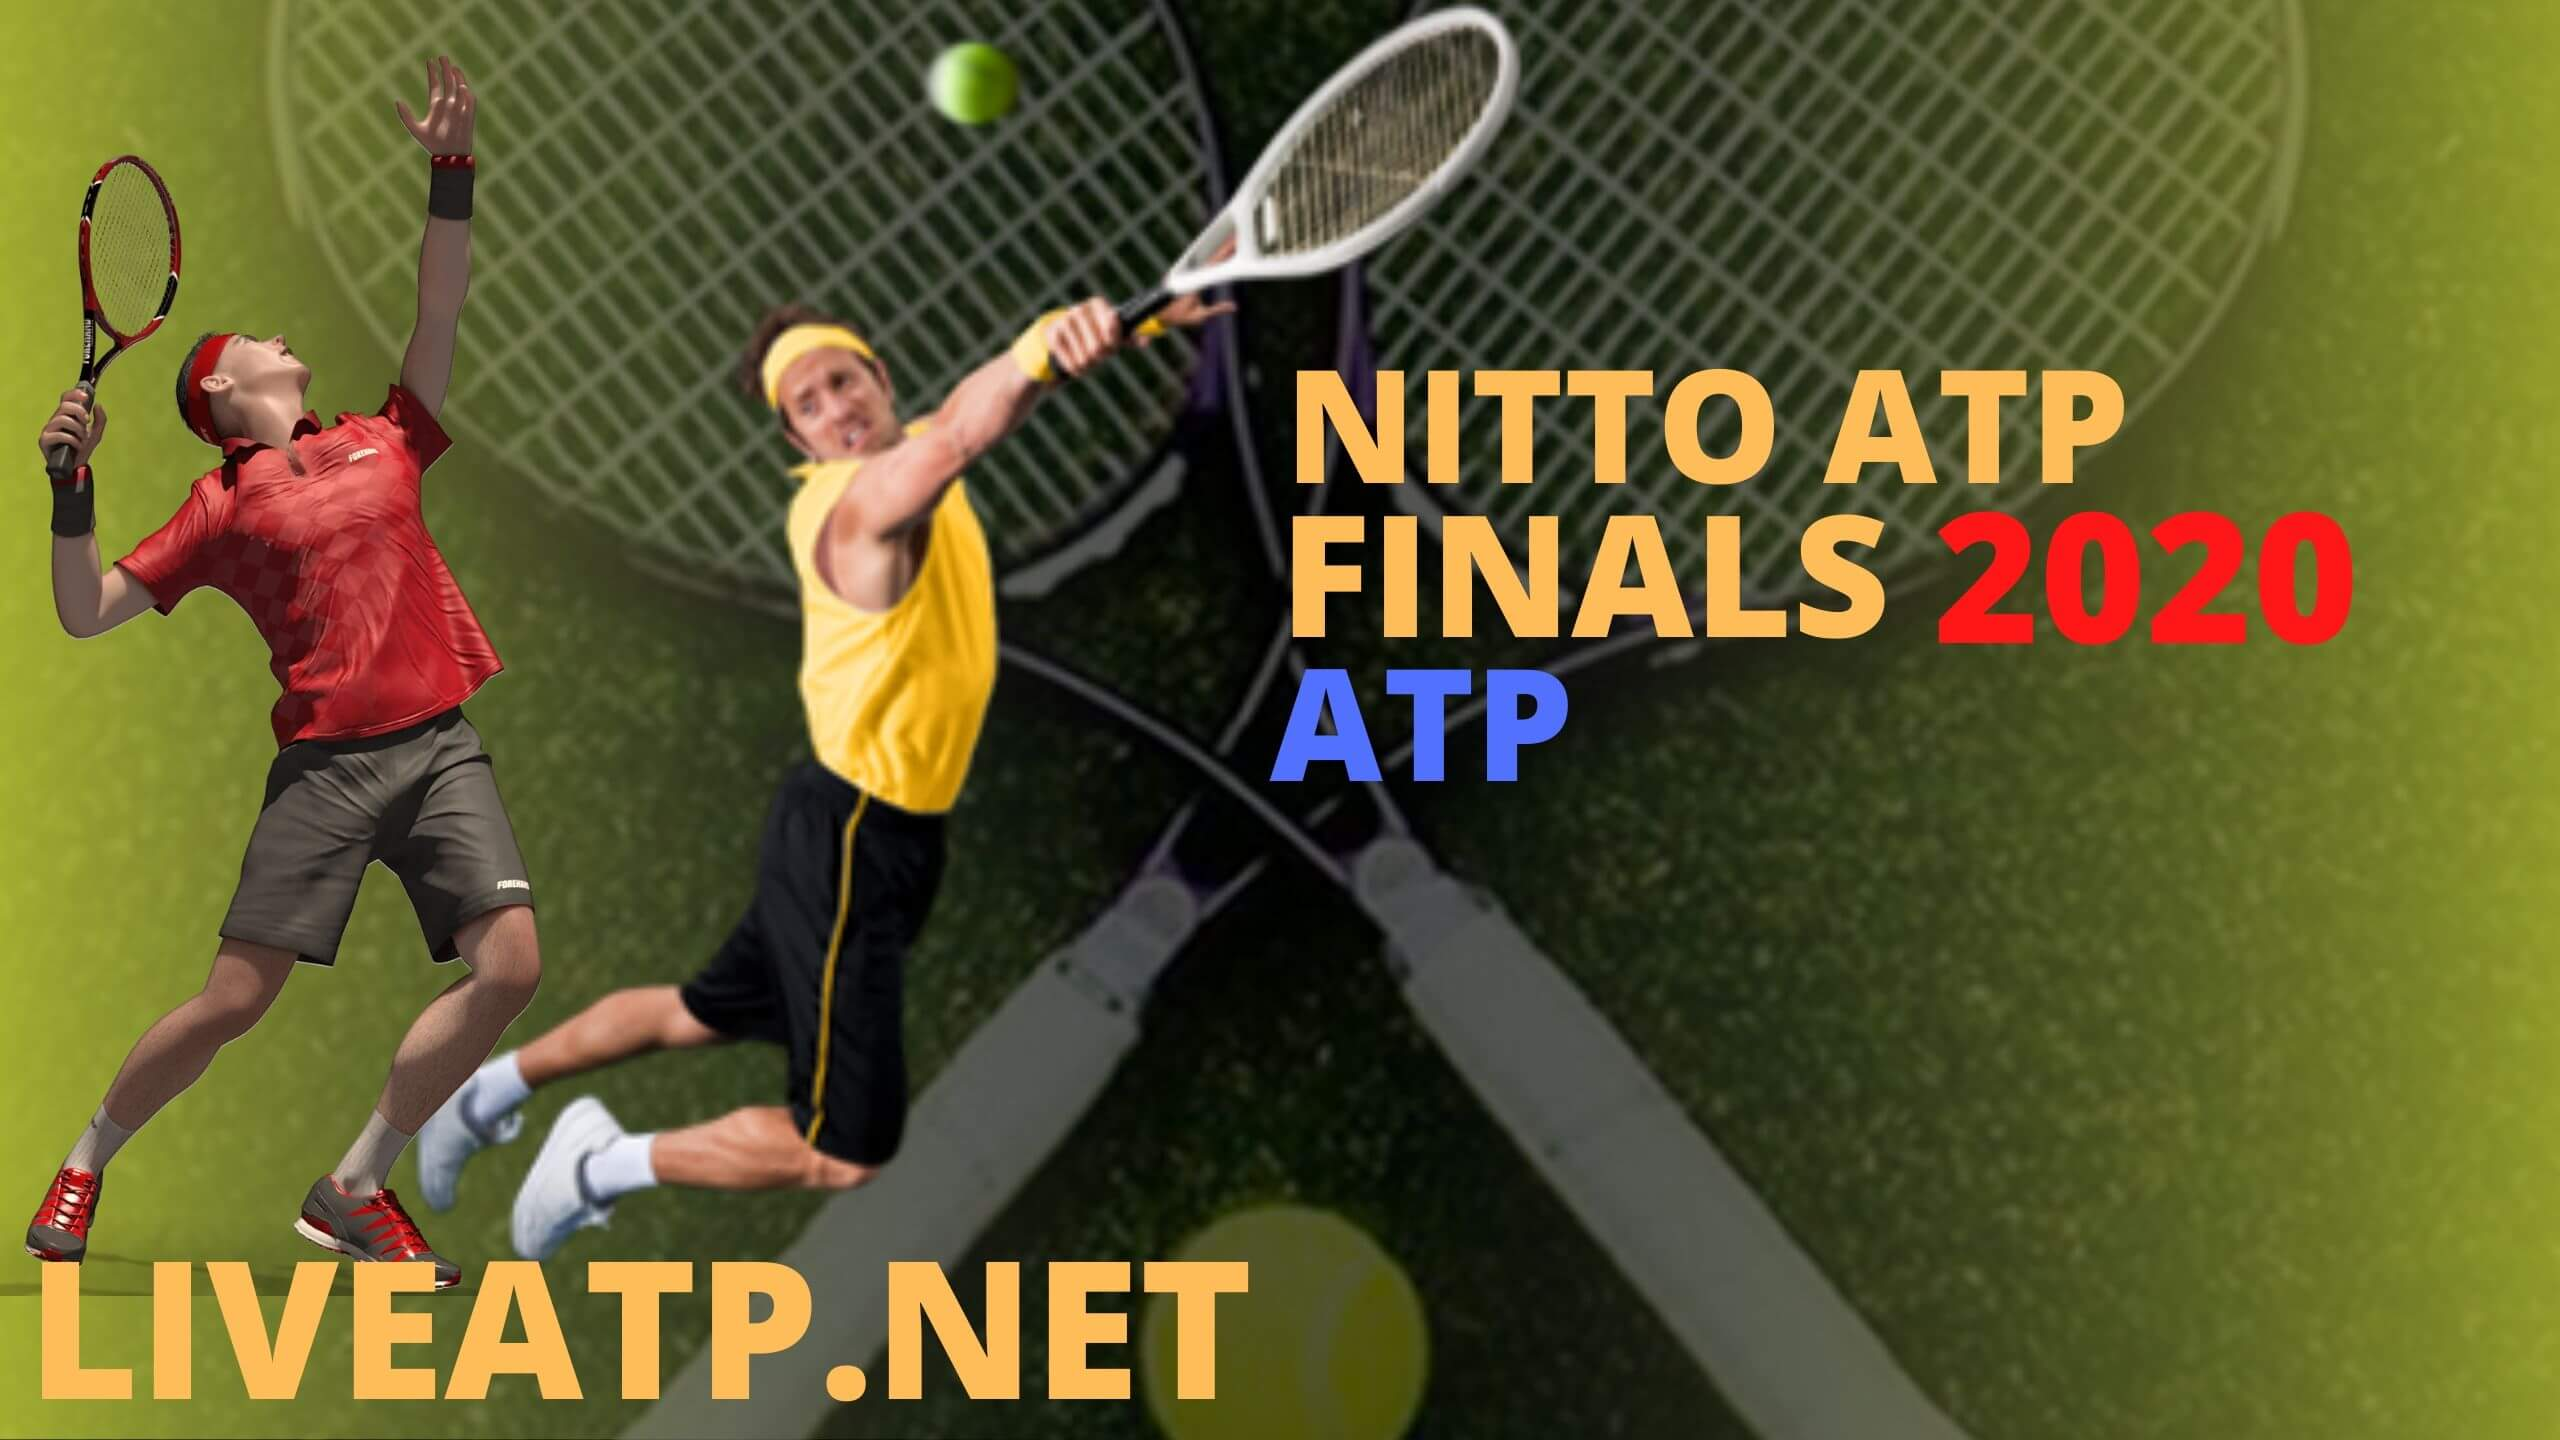 Nitto ATP Finals Live Stream 2020 |  Day 3